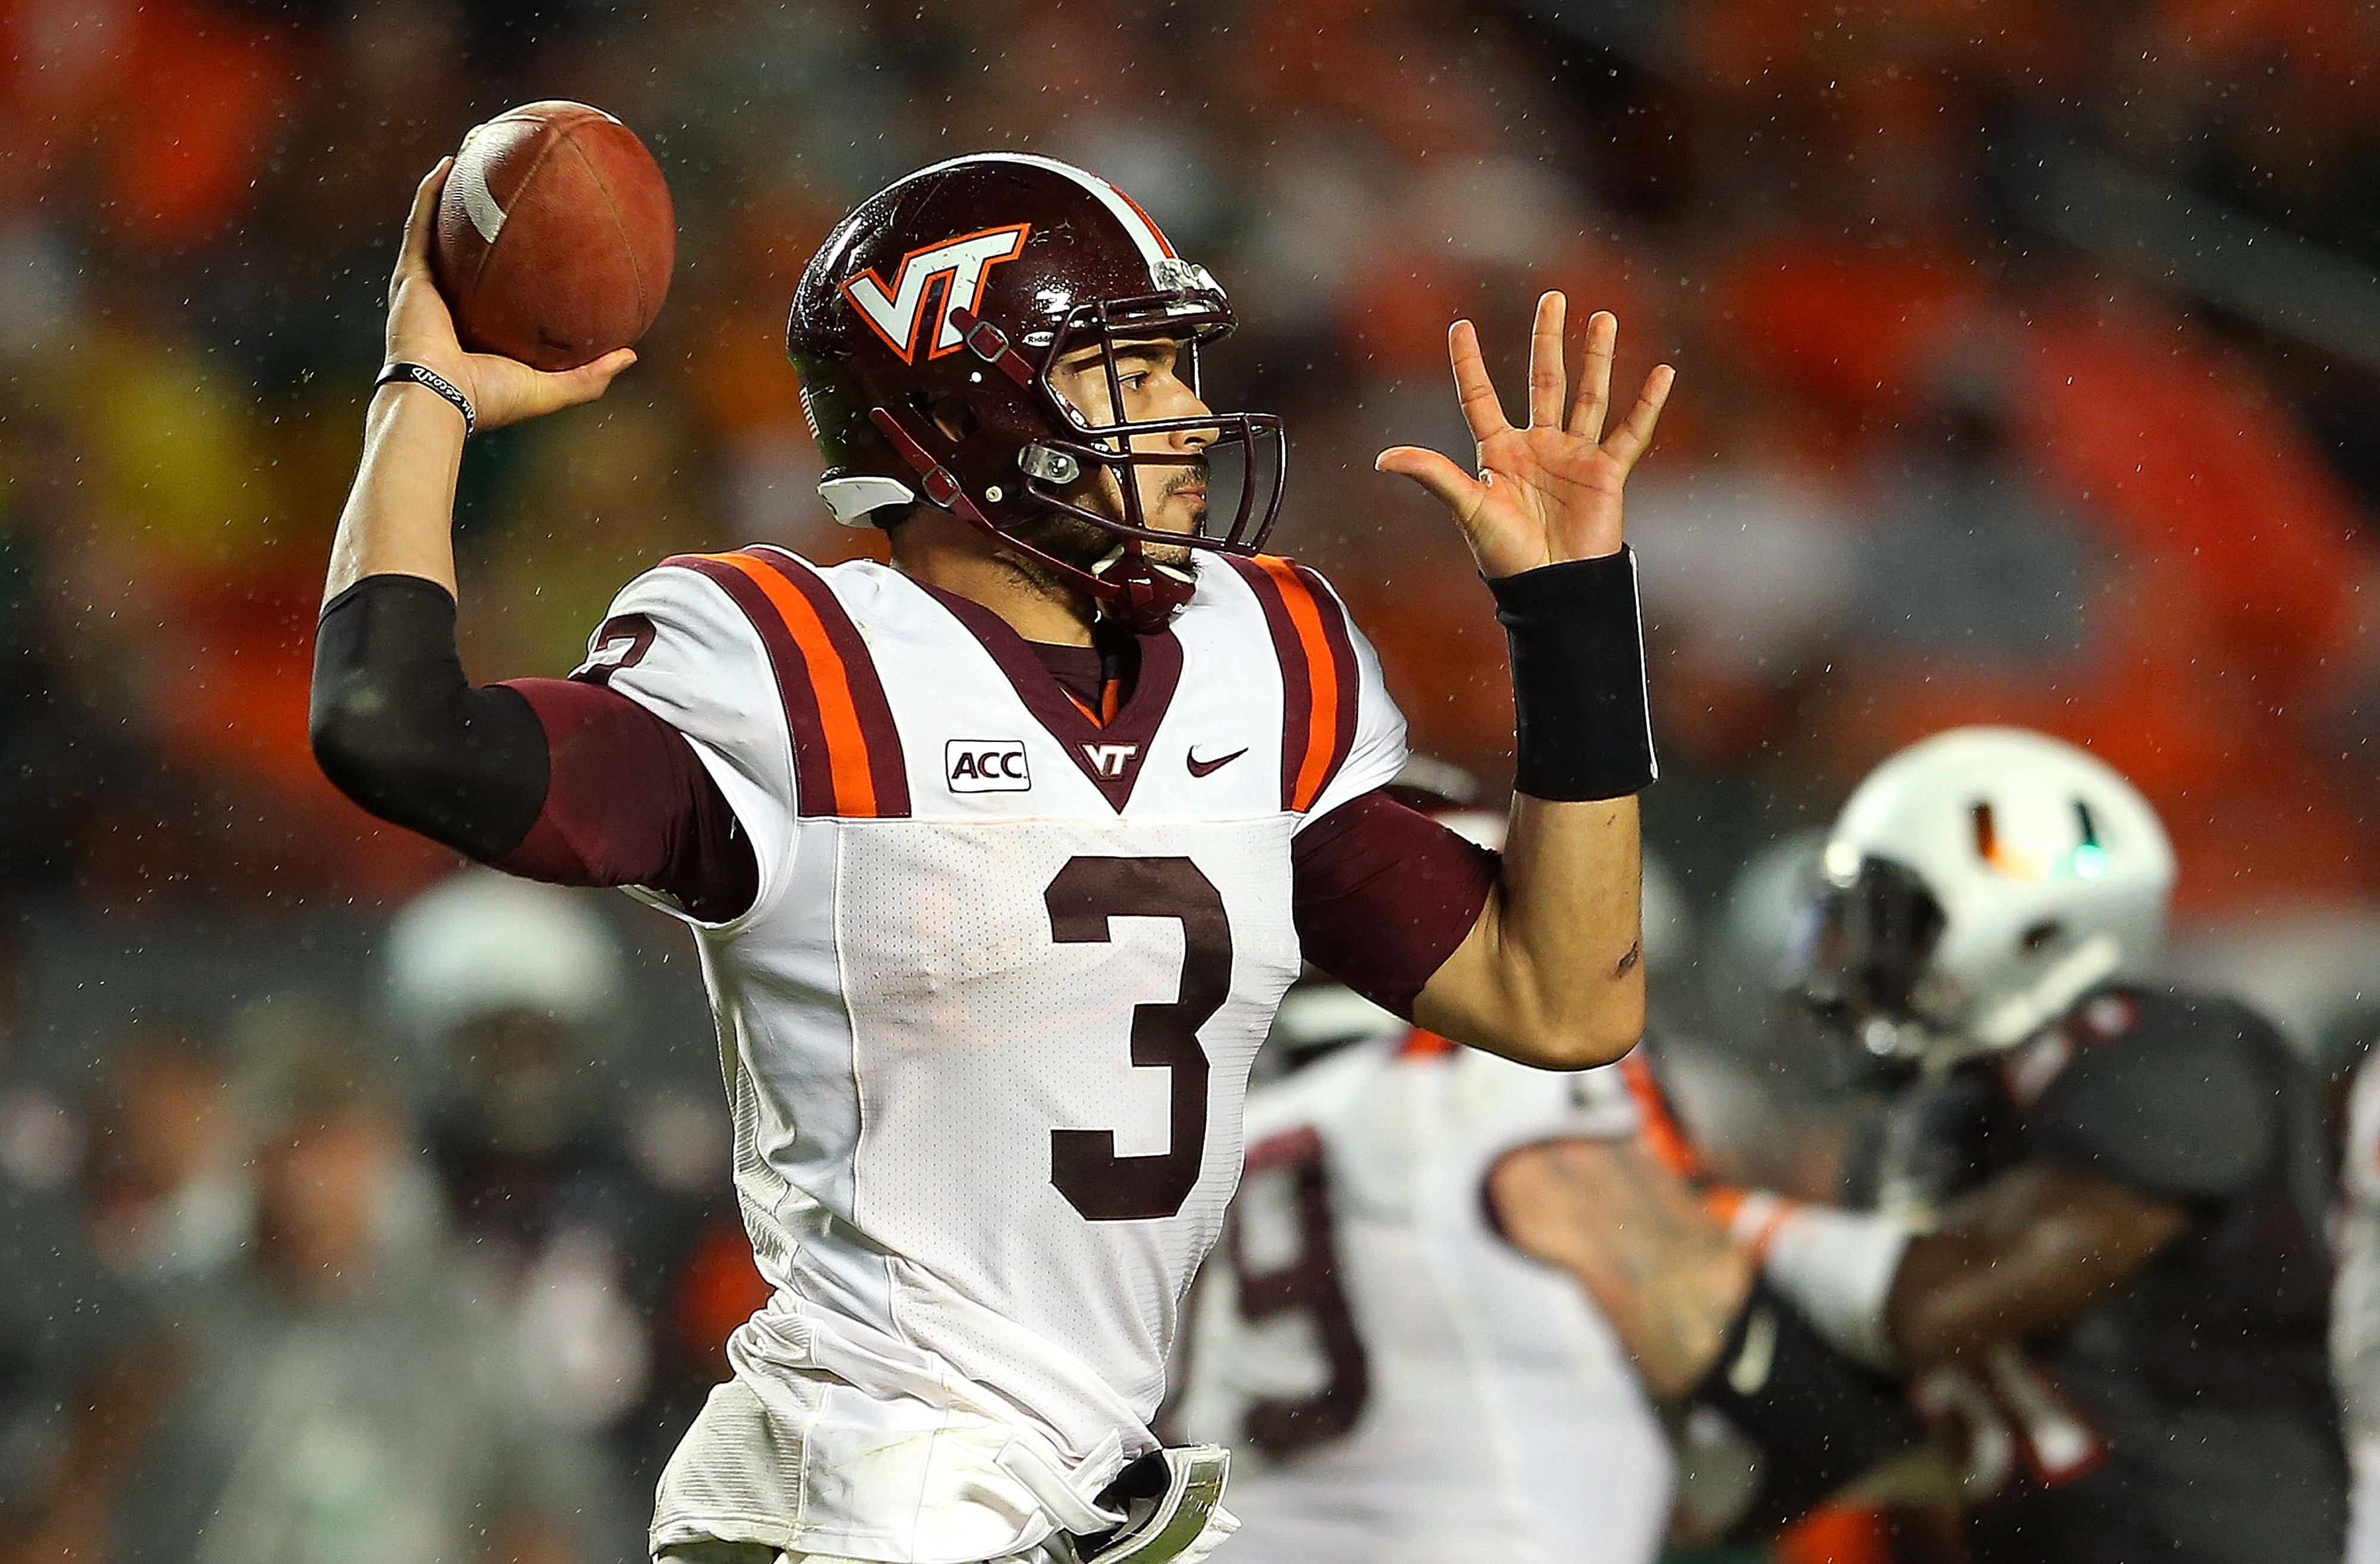 Virginia Tech vs. Miami 2013 final score: Hokies' offensive explosion topples No. 11 Miami